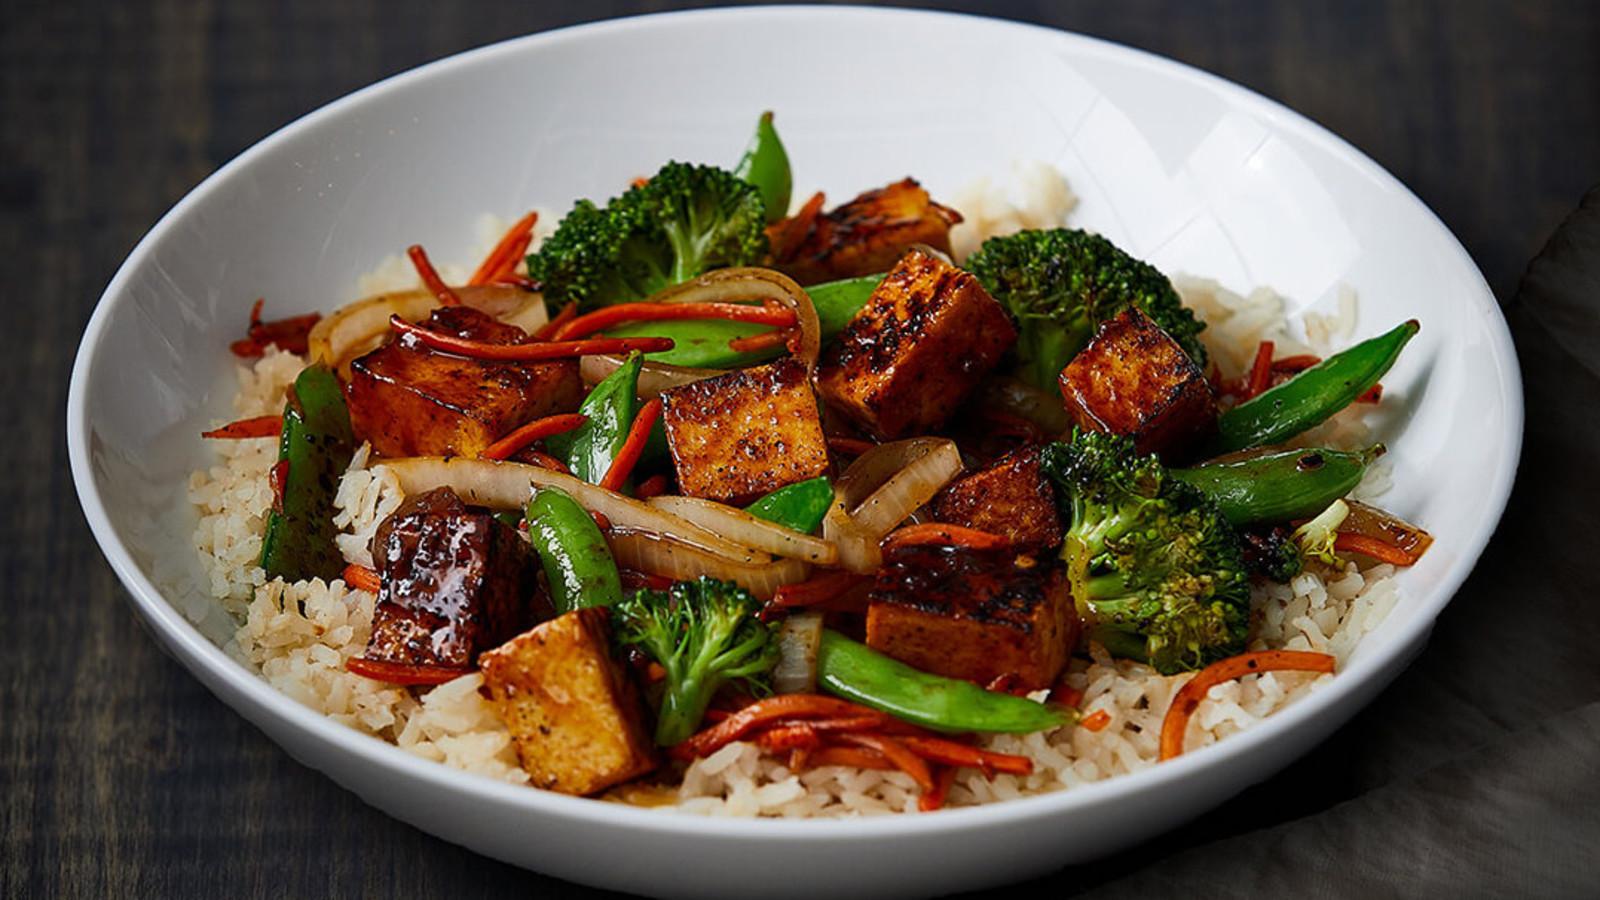 General Tso's Vegetarian Stir Fry